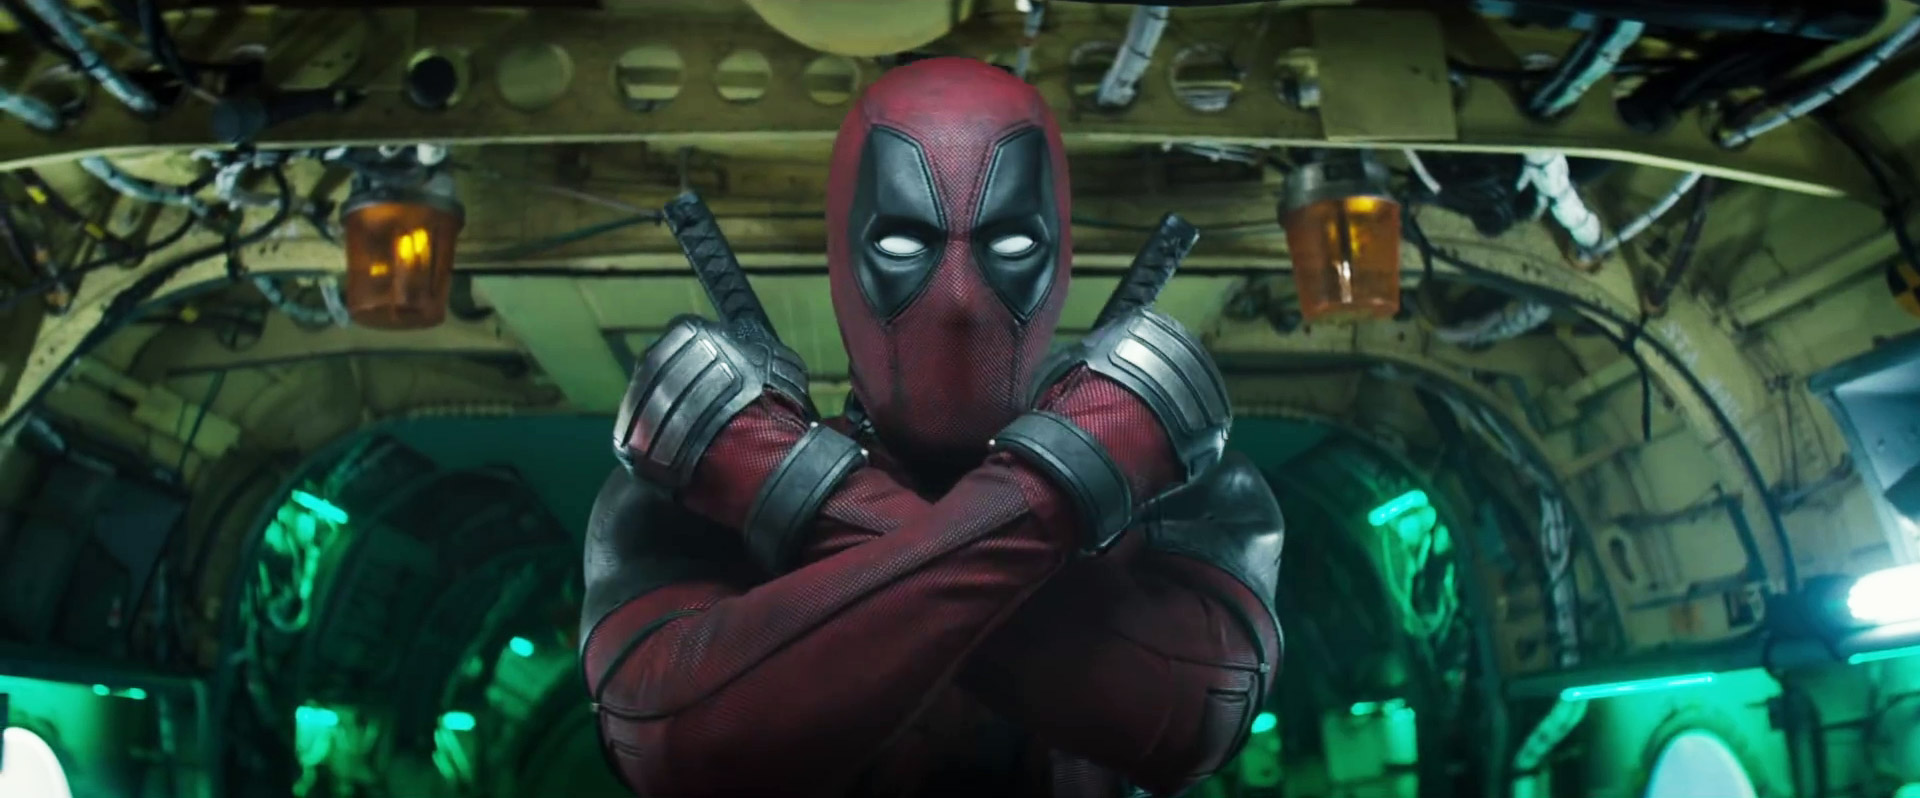 Super Cool Trailer for Deadpool 2